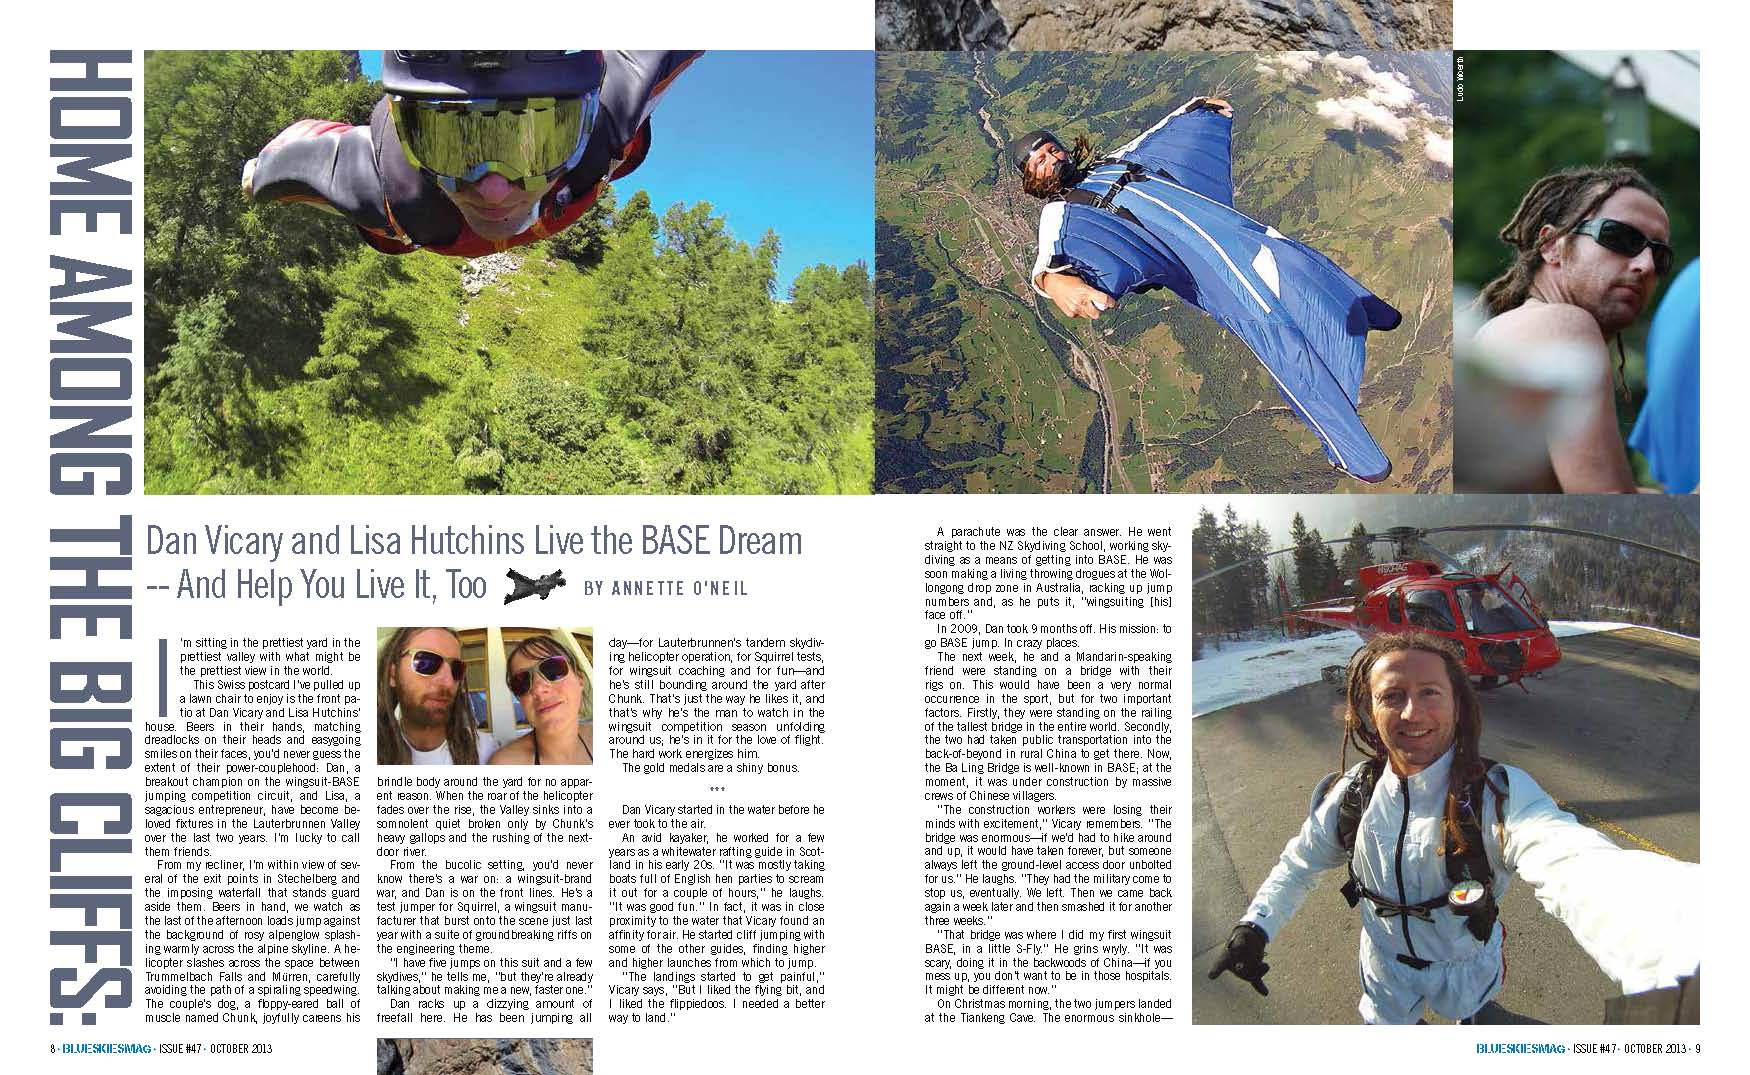 Home Among the Big Cliffs: Dan Vicary and Lisa Hutchins Live the BASE Dream